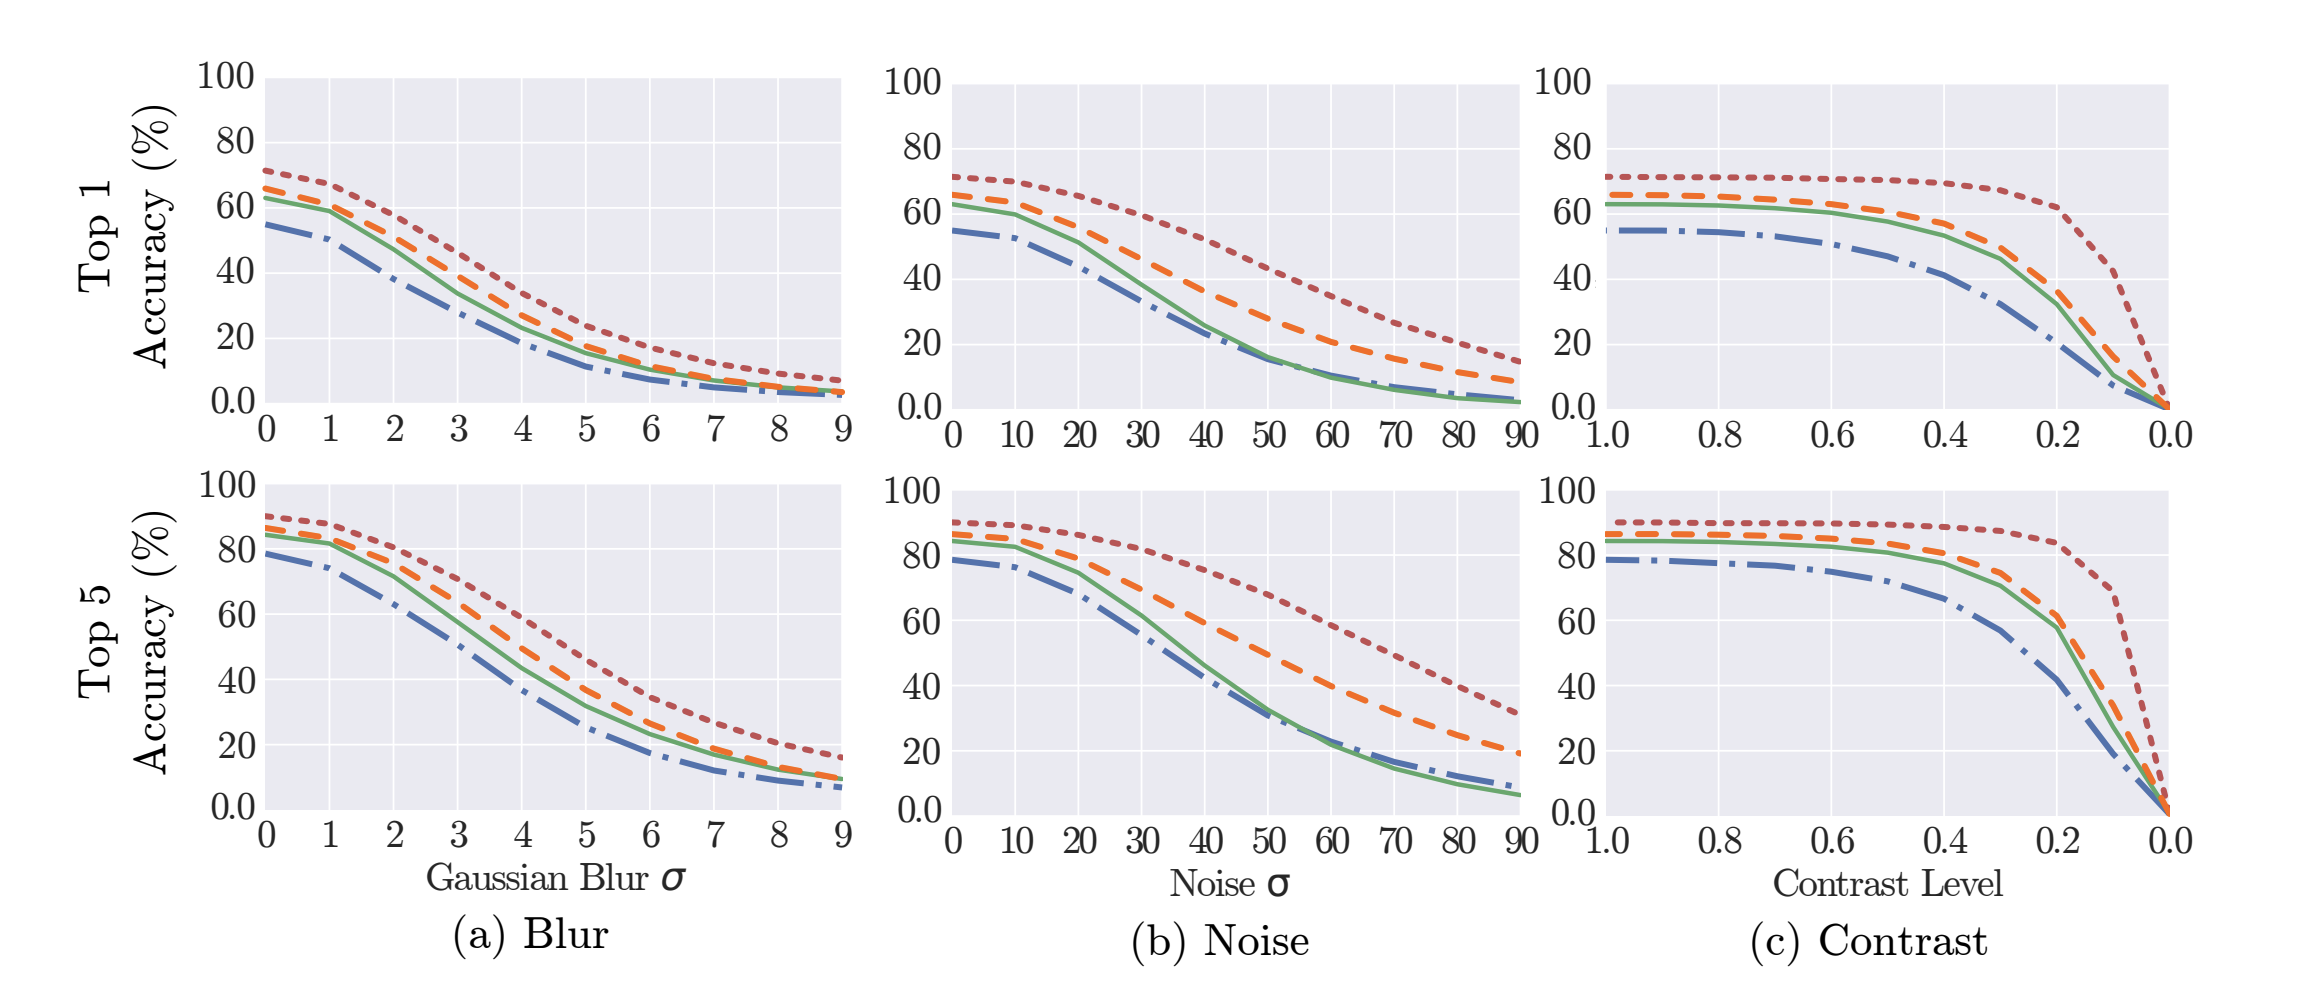 Visualization of model accuracy relative to augmentation amount (Blur, Noise, Contrast)